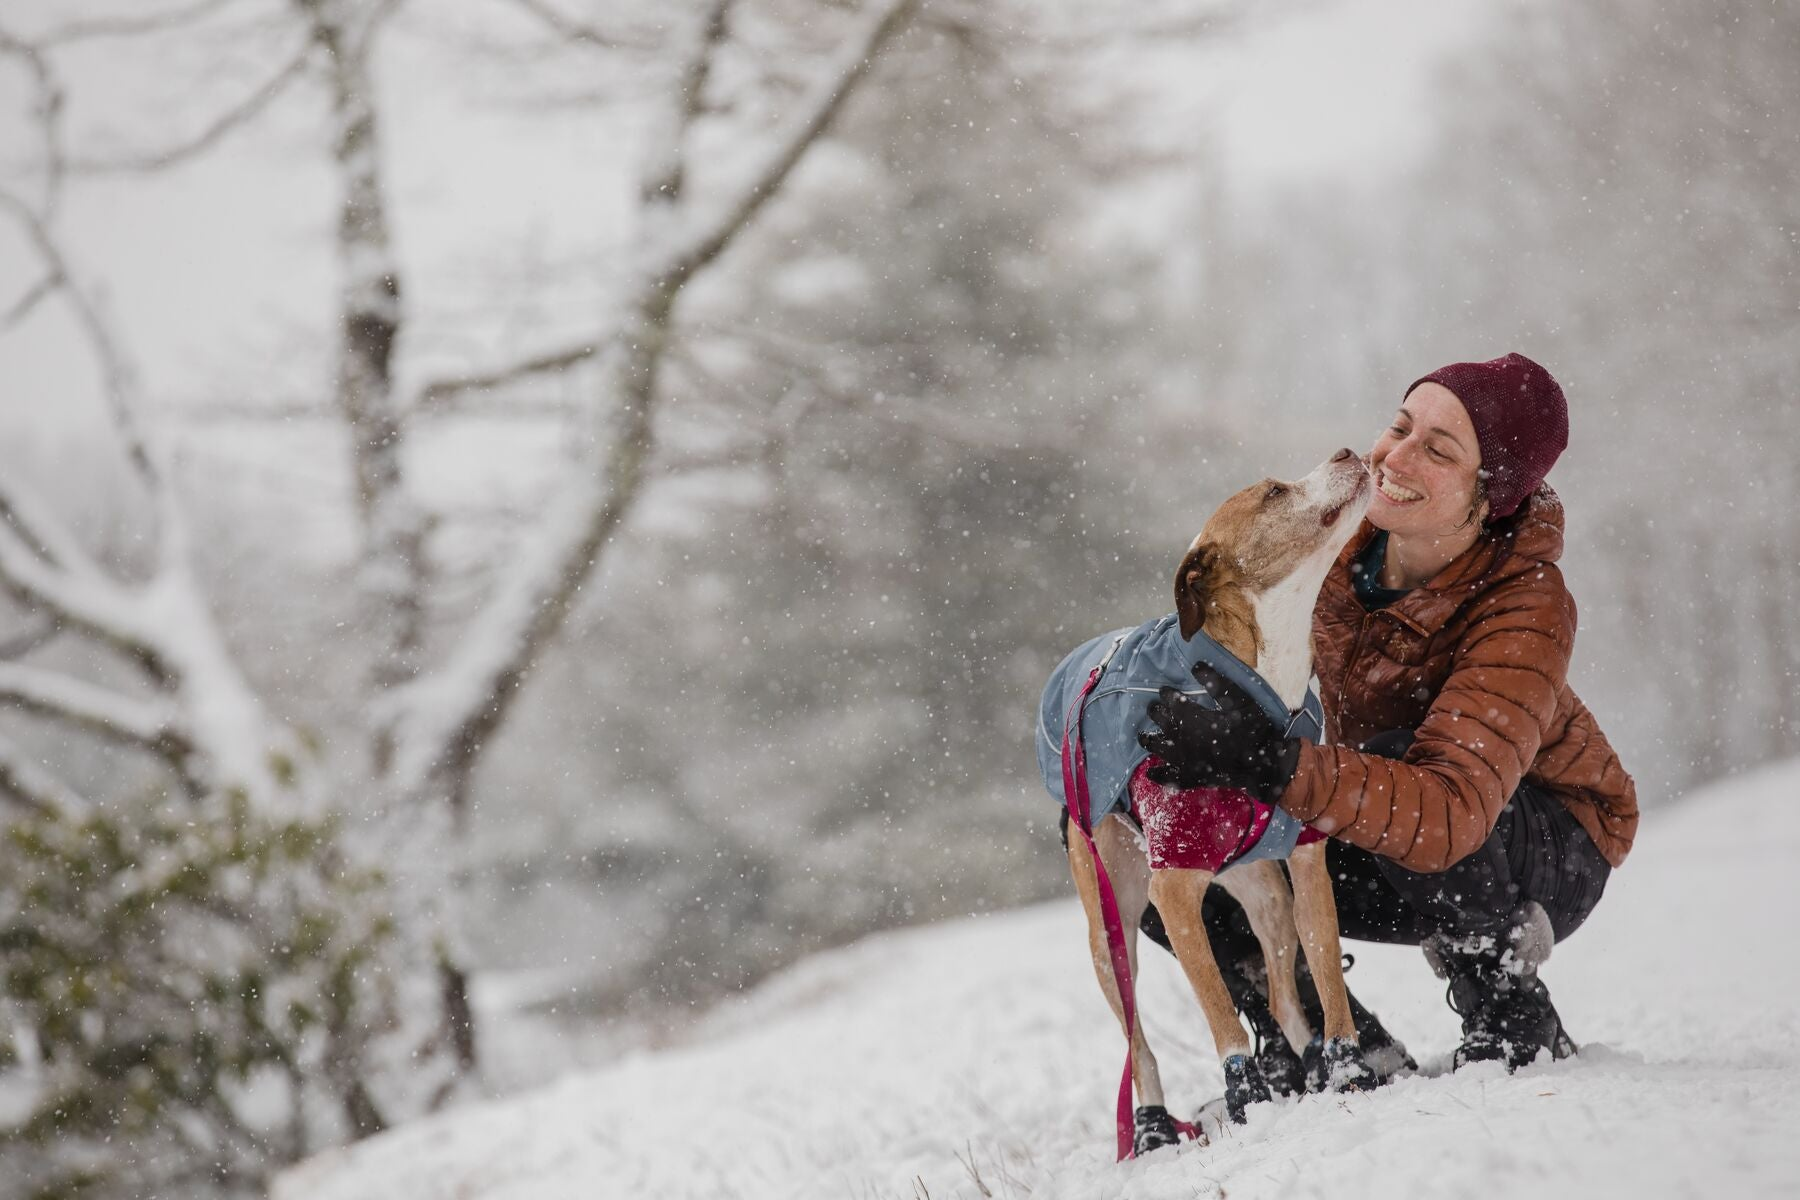 Woman stops to give pets to dog in snowy weather.